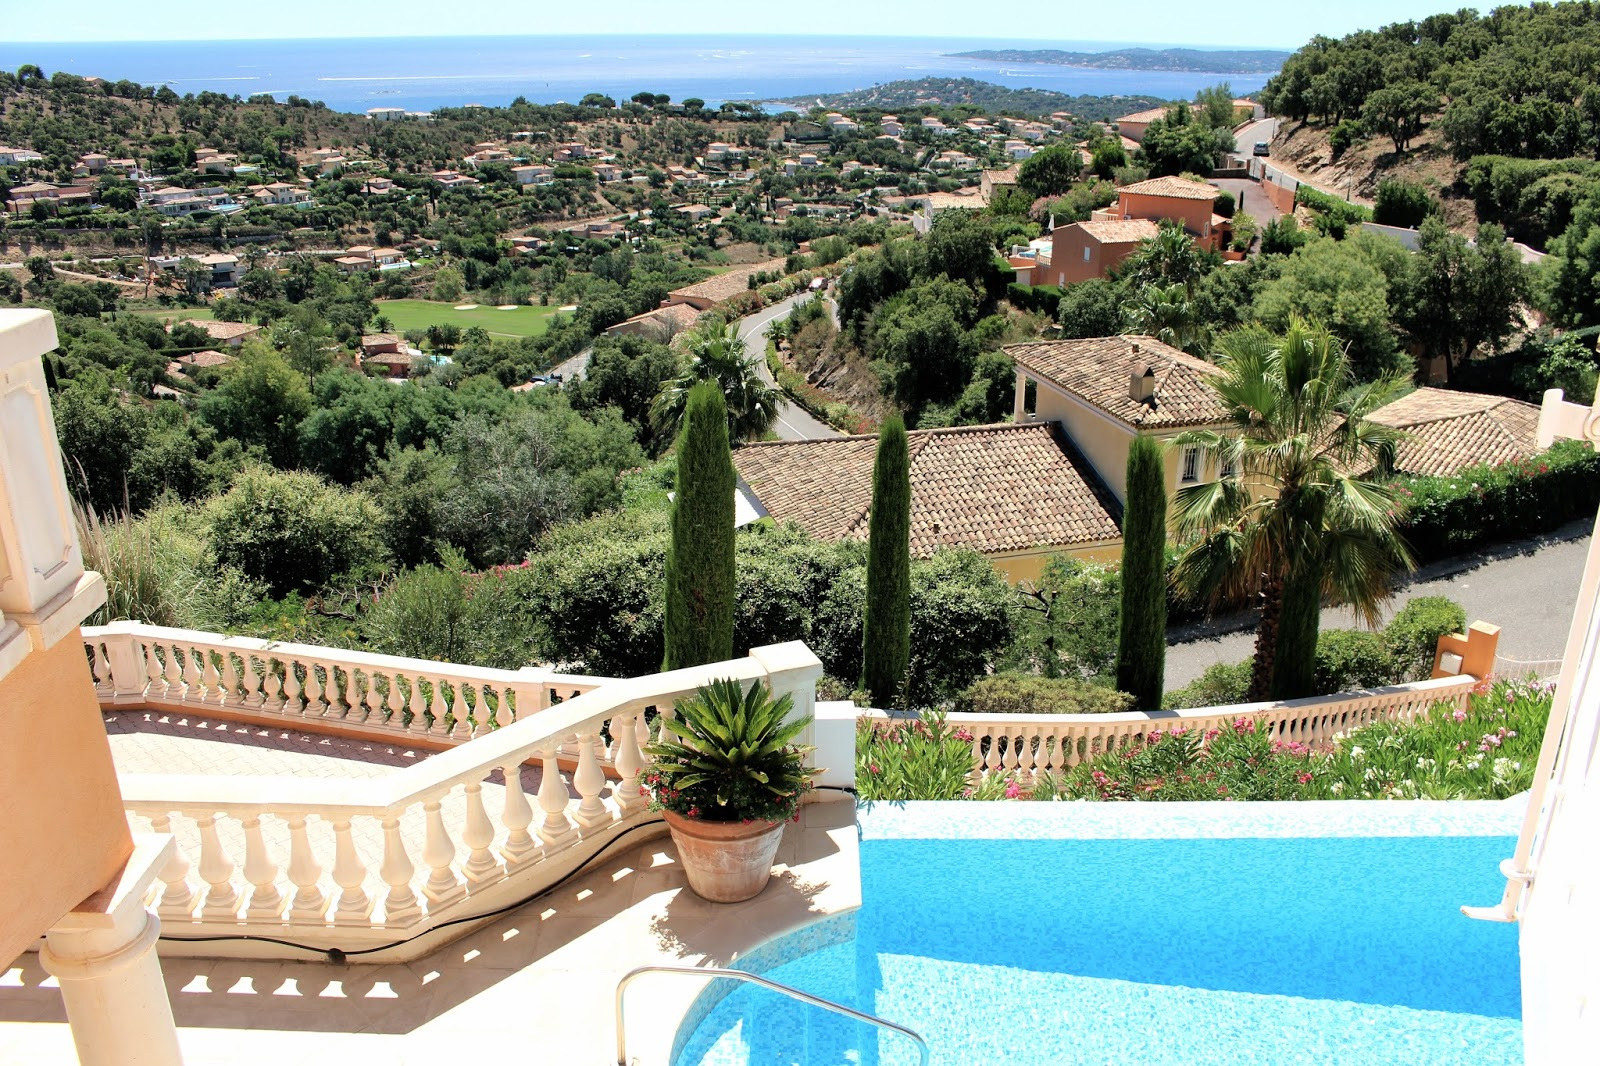 View from a luxury villa in Saint Maxime